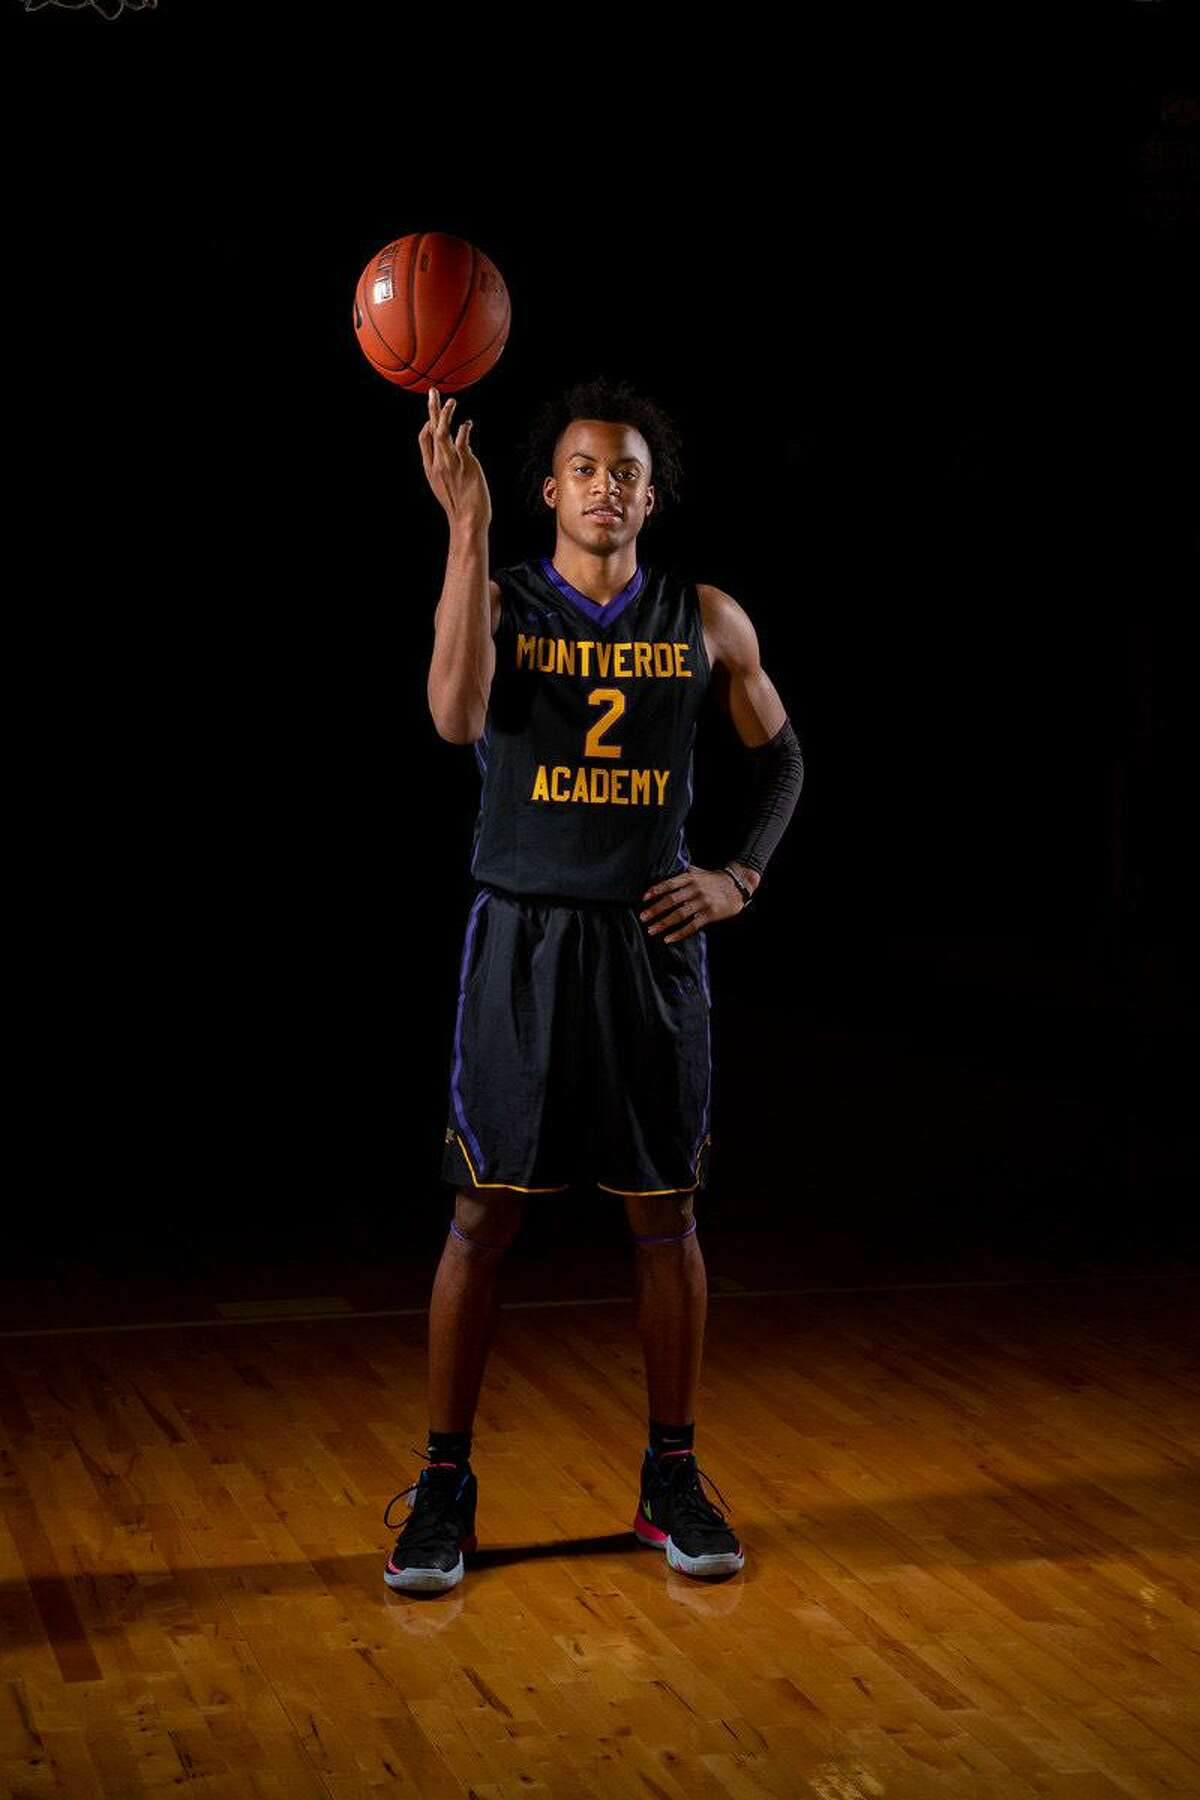 Moses Moody, now a rookie guard with the Warriors, considers his two years at Montverde Academy in Florida a critical part of his journey to the NBA.